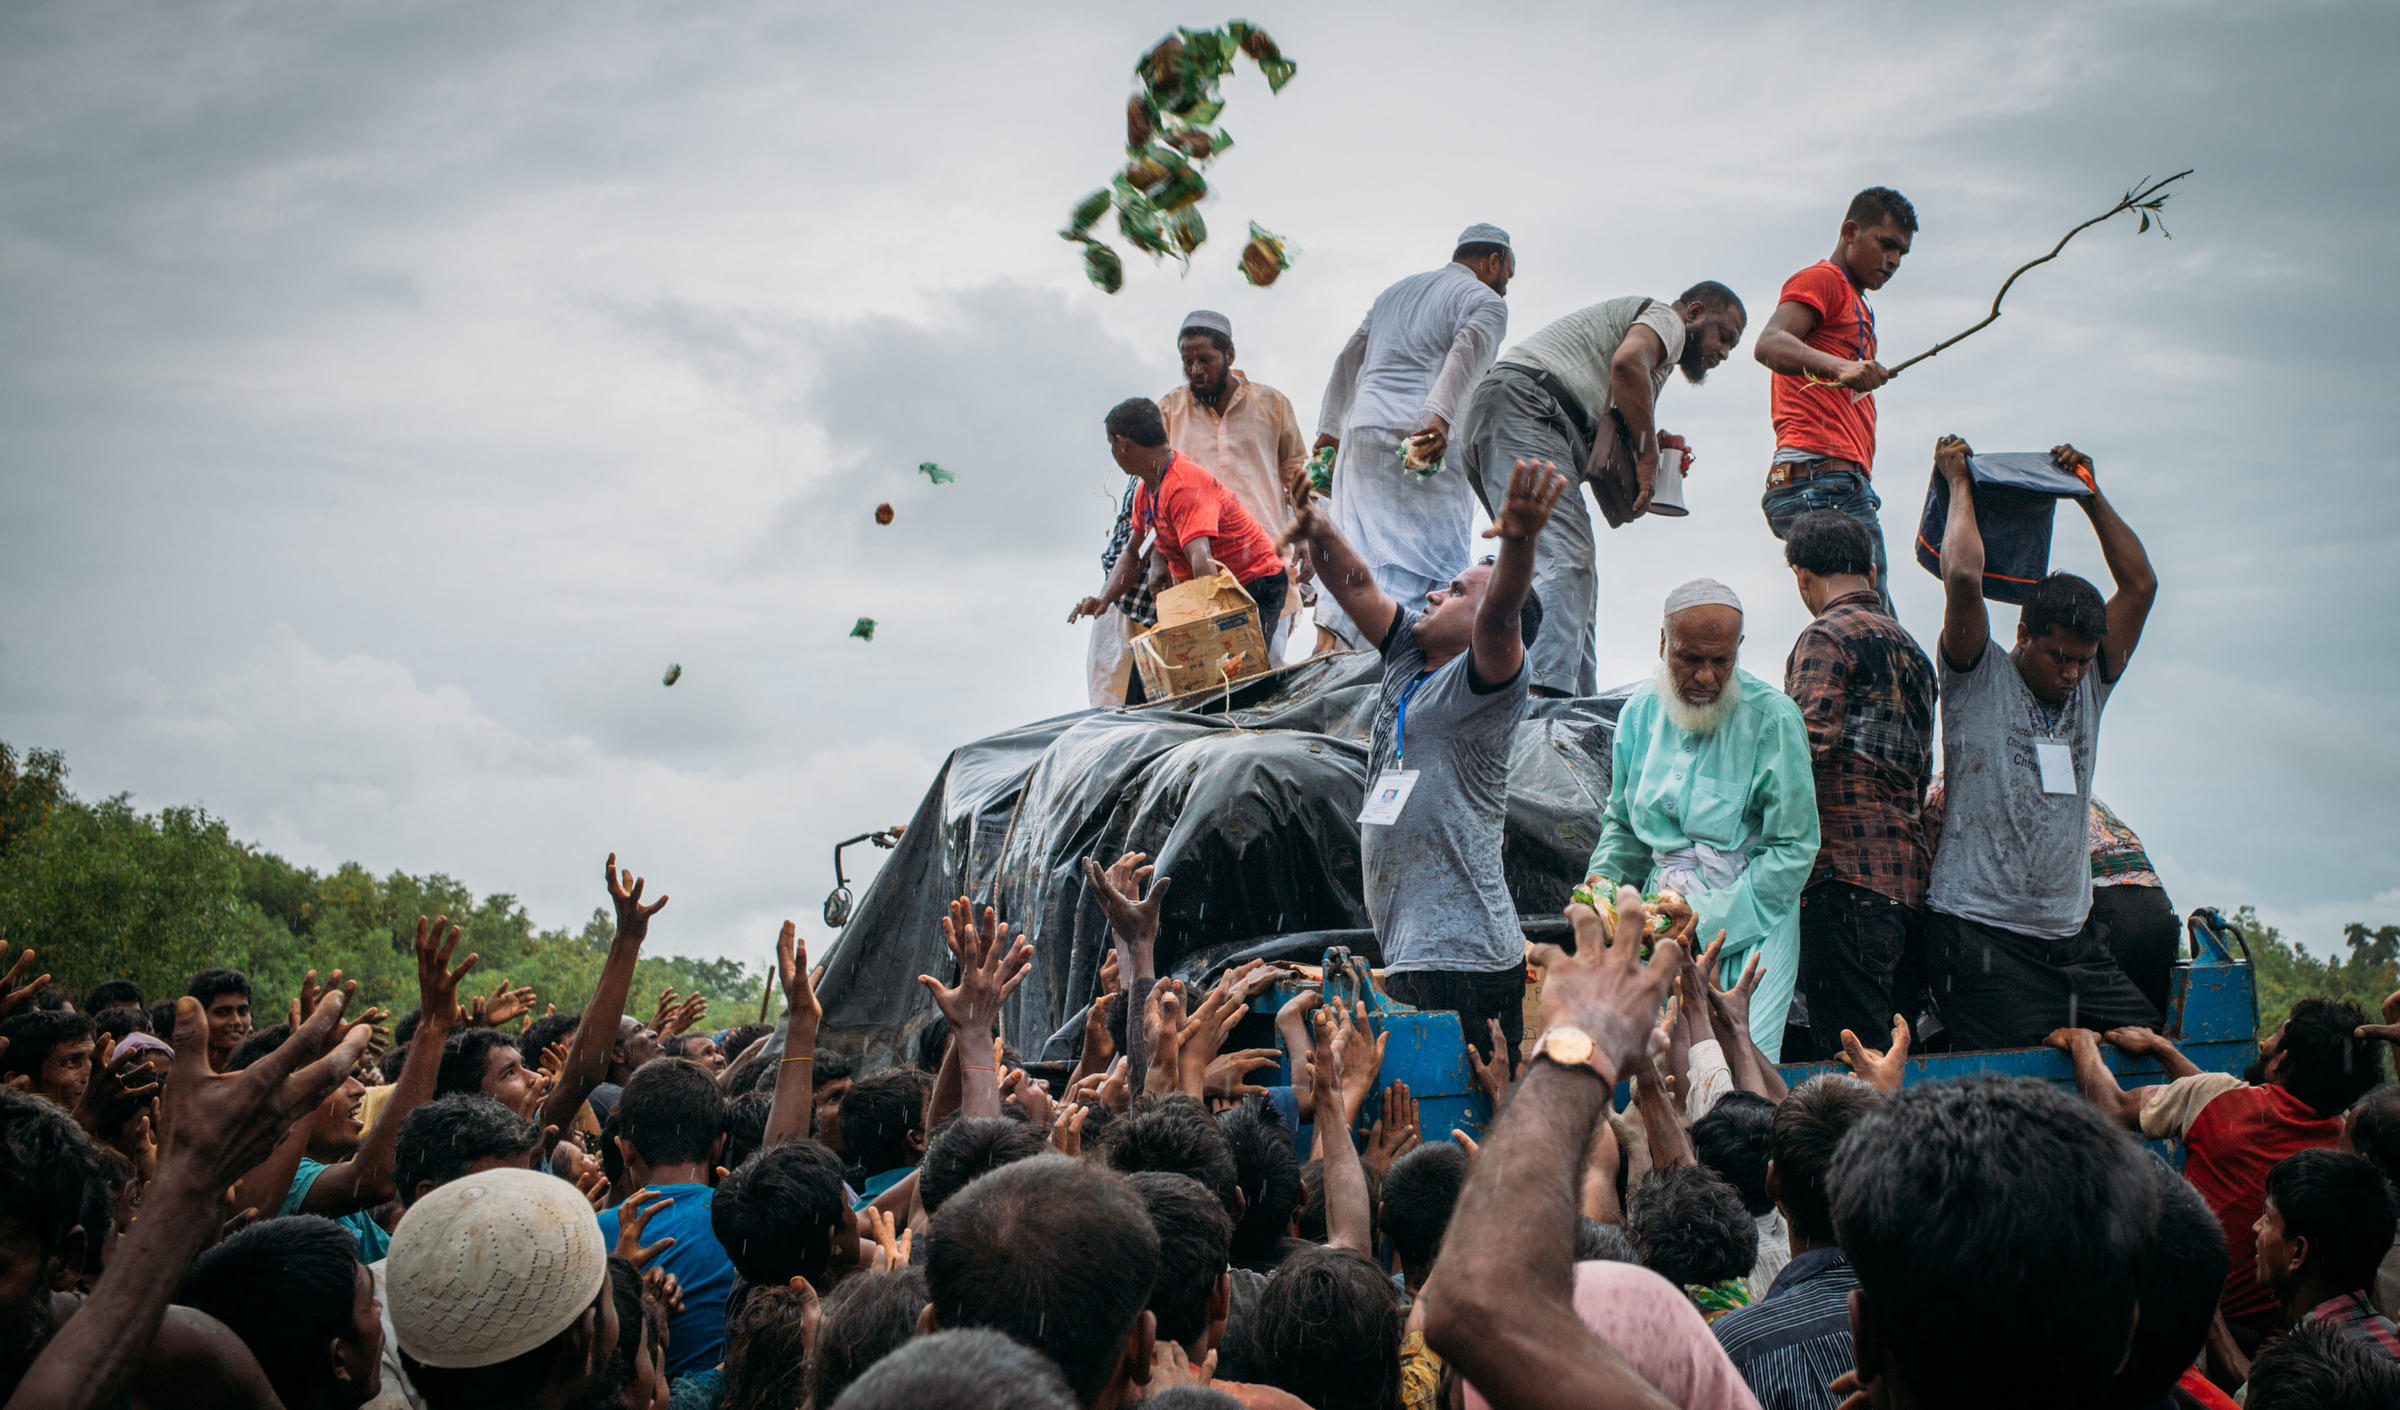 bangladesh myanmar Bangladesh on monday rejected a claim by myanmar that the buddhist-majority nation had repatriated the first five among some 700,000 rohingya muslim refugees who fled to the neighboring country to escape military-led violence against the minority group.